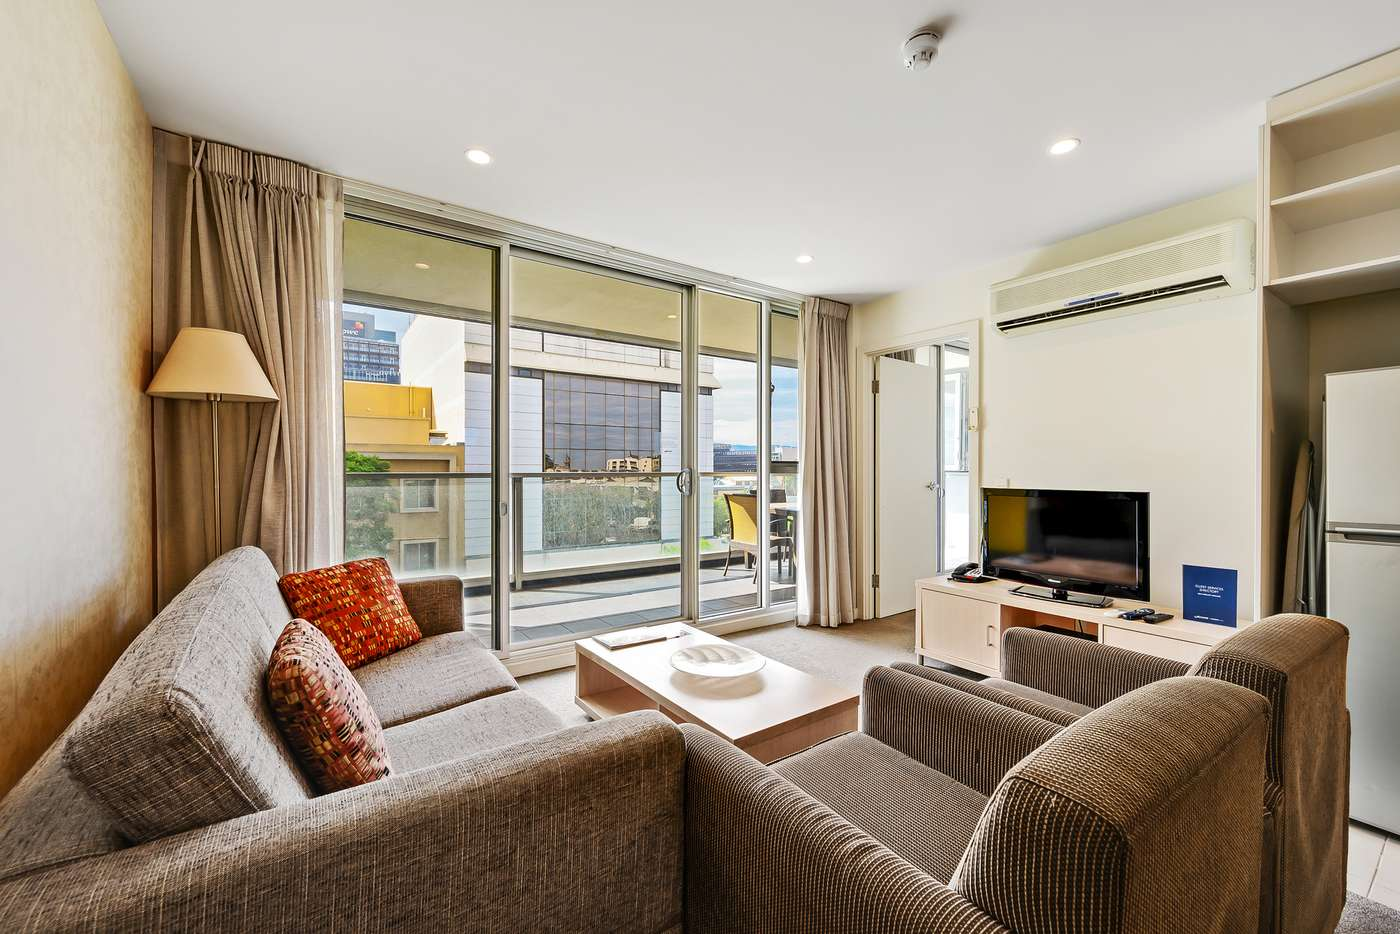 Sixth view of Homely apartment listing, 418/185 Morphett Street, Adelaide SA 5000